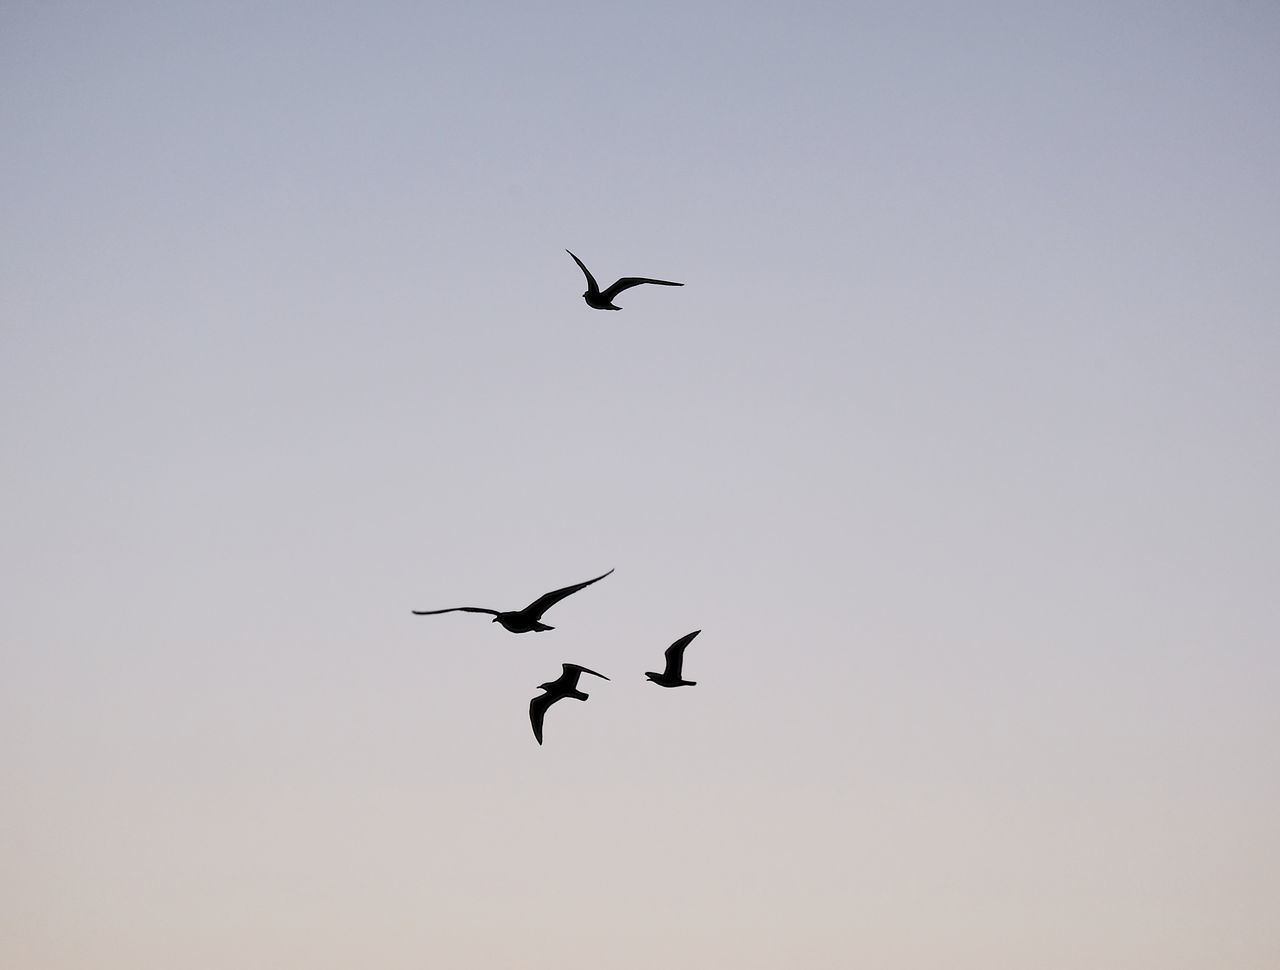 flying, animals in the wild, bird, animal themes, spread wings, mid-air, animal wildlife, low angle view, nature, copy space, clear sky, silhouette, outdoors, beauty in nature, no people, day, migrating, motion, togetherness, full length, sky